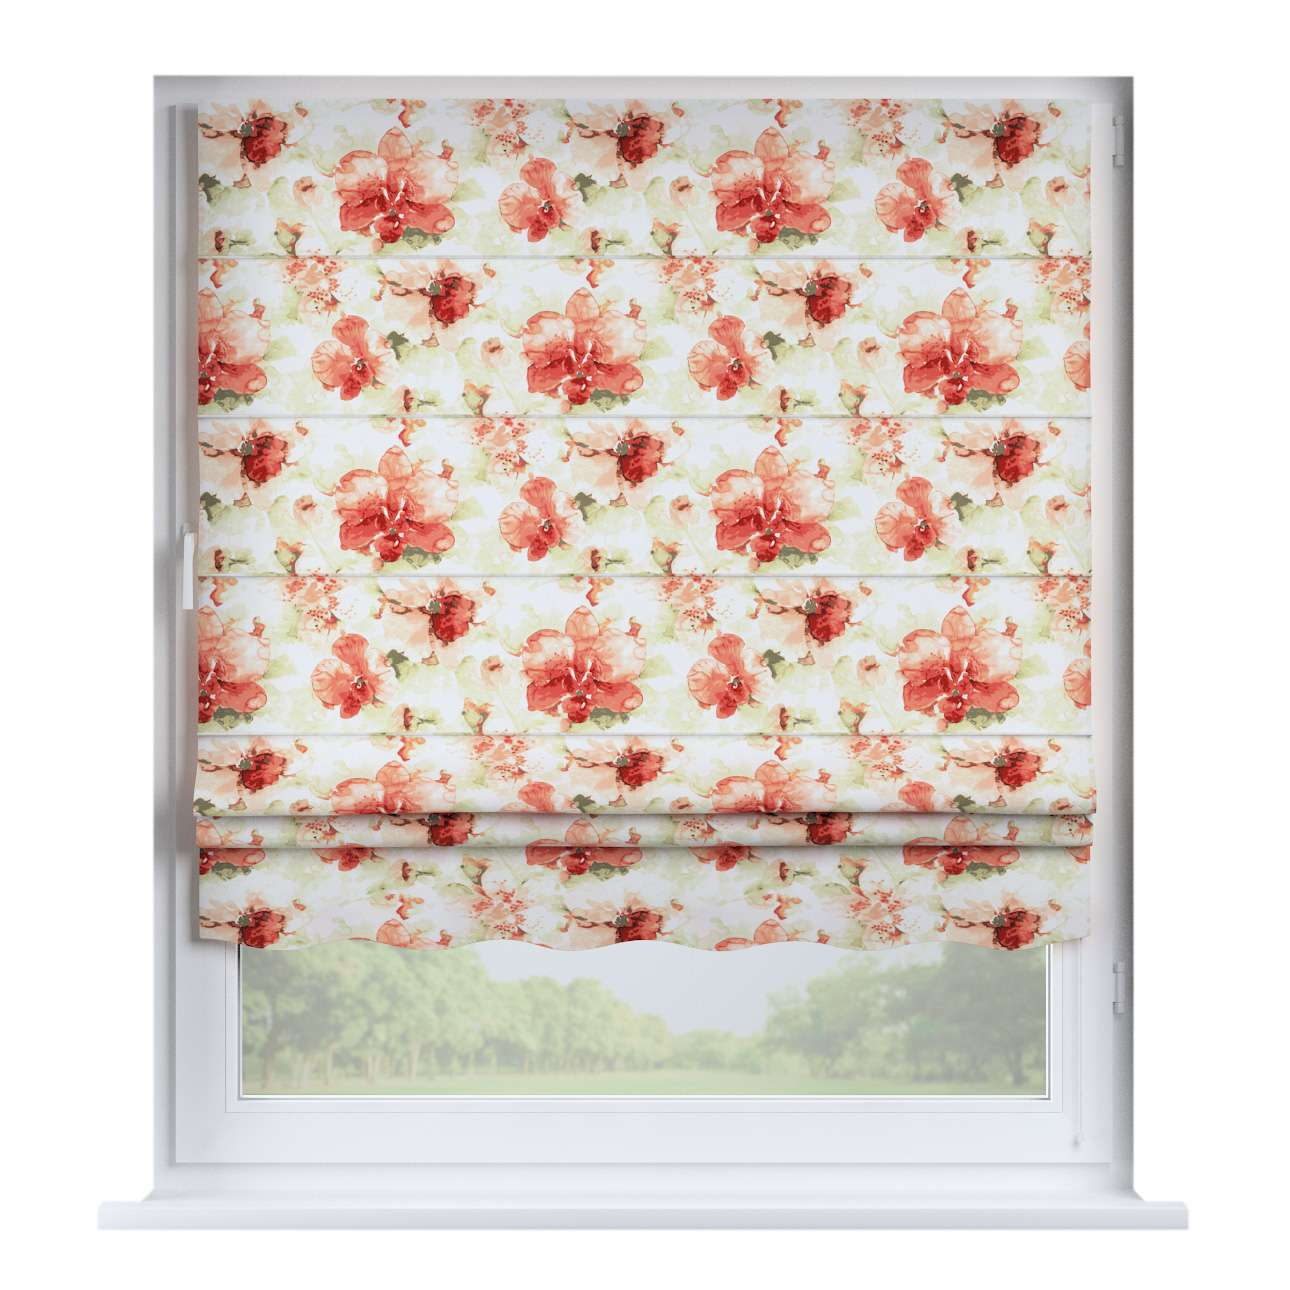 Florence roman blind  80 x 170 cm (31.5 x 67 inch) in collection Acapulco, fabric: 141-34